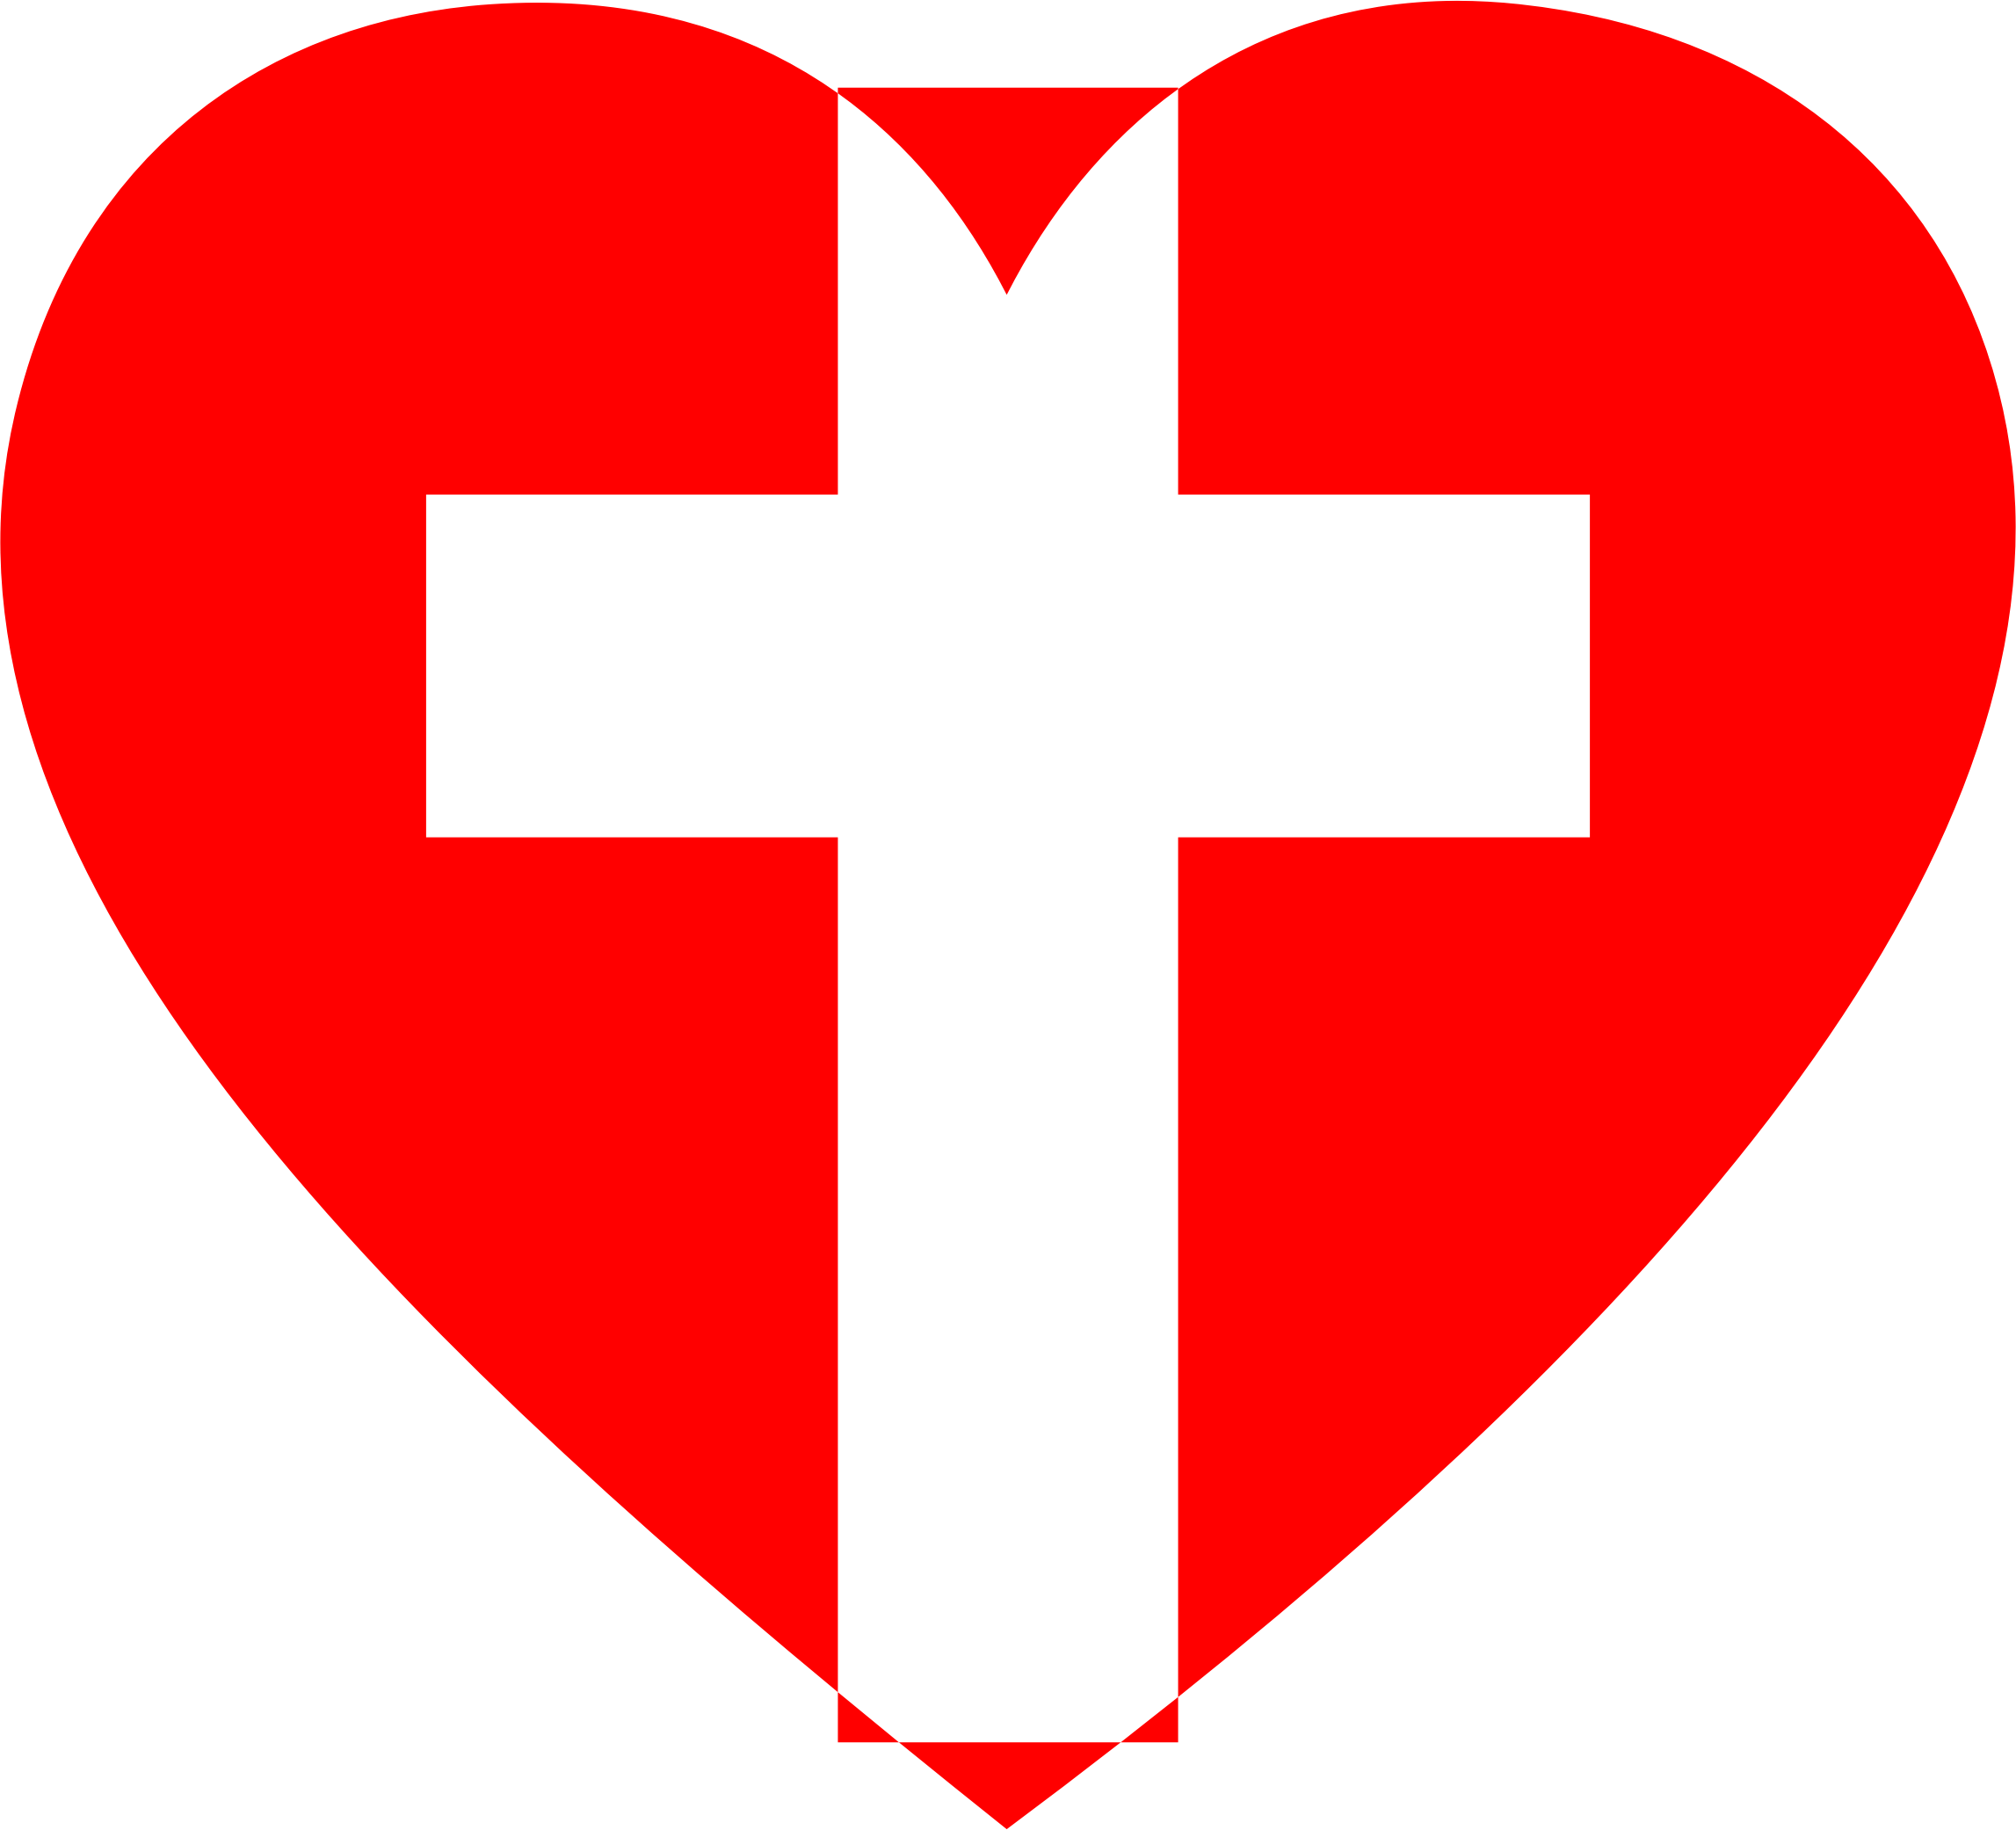 Heart Cross 2 by GDJ